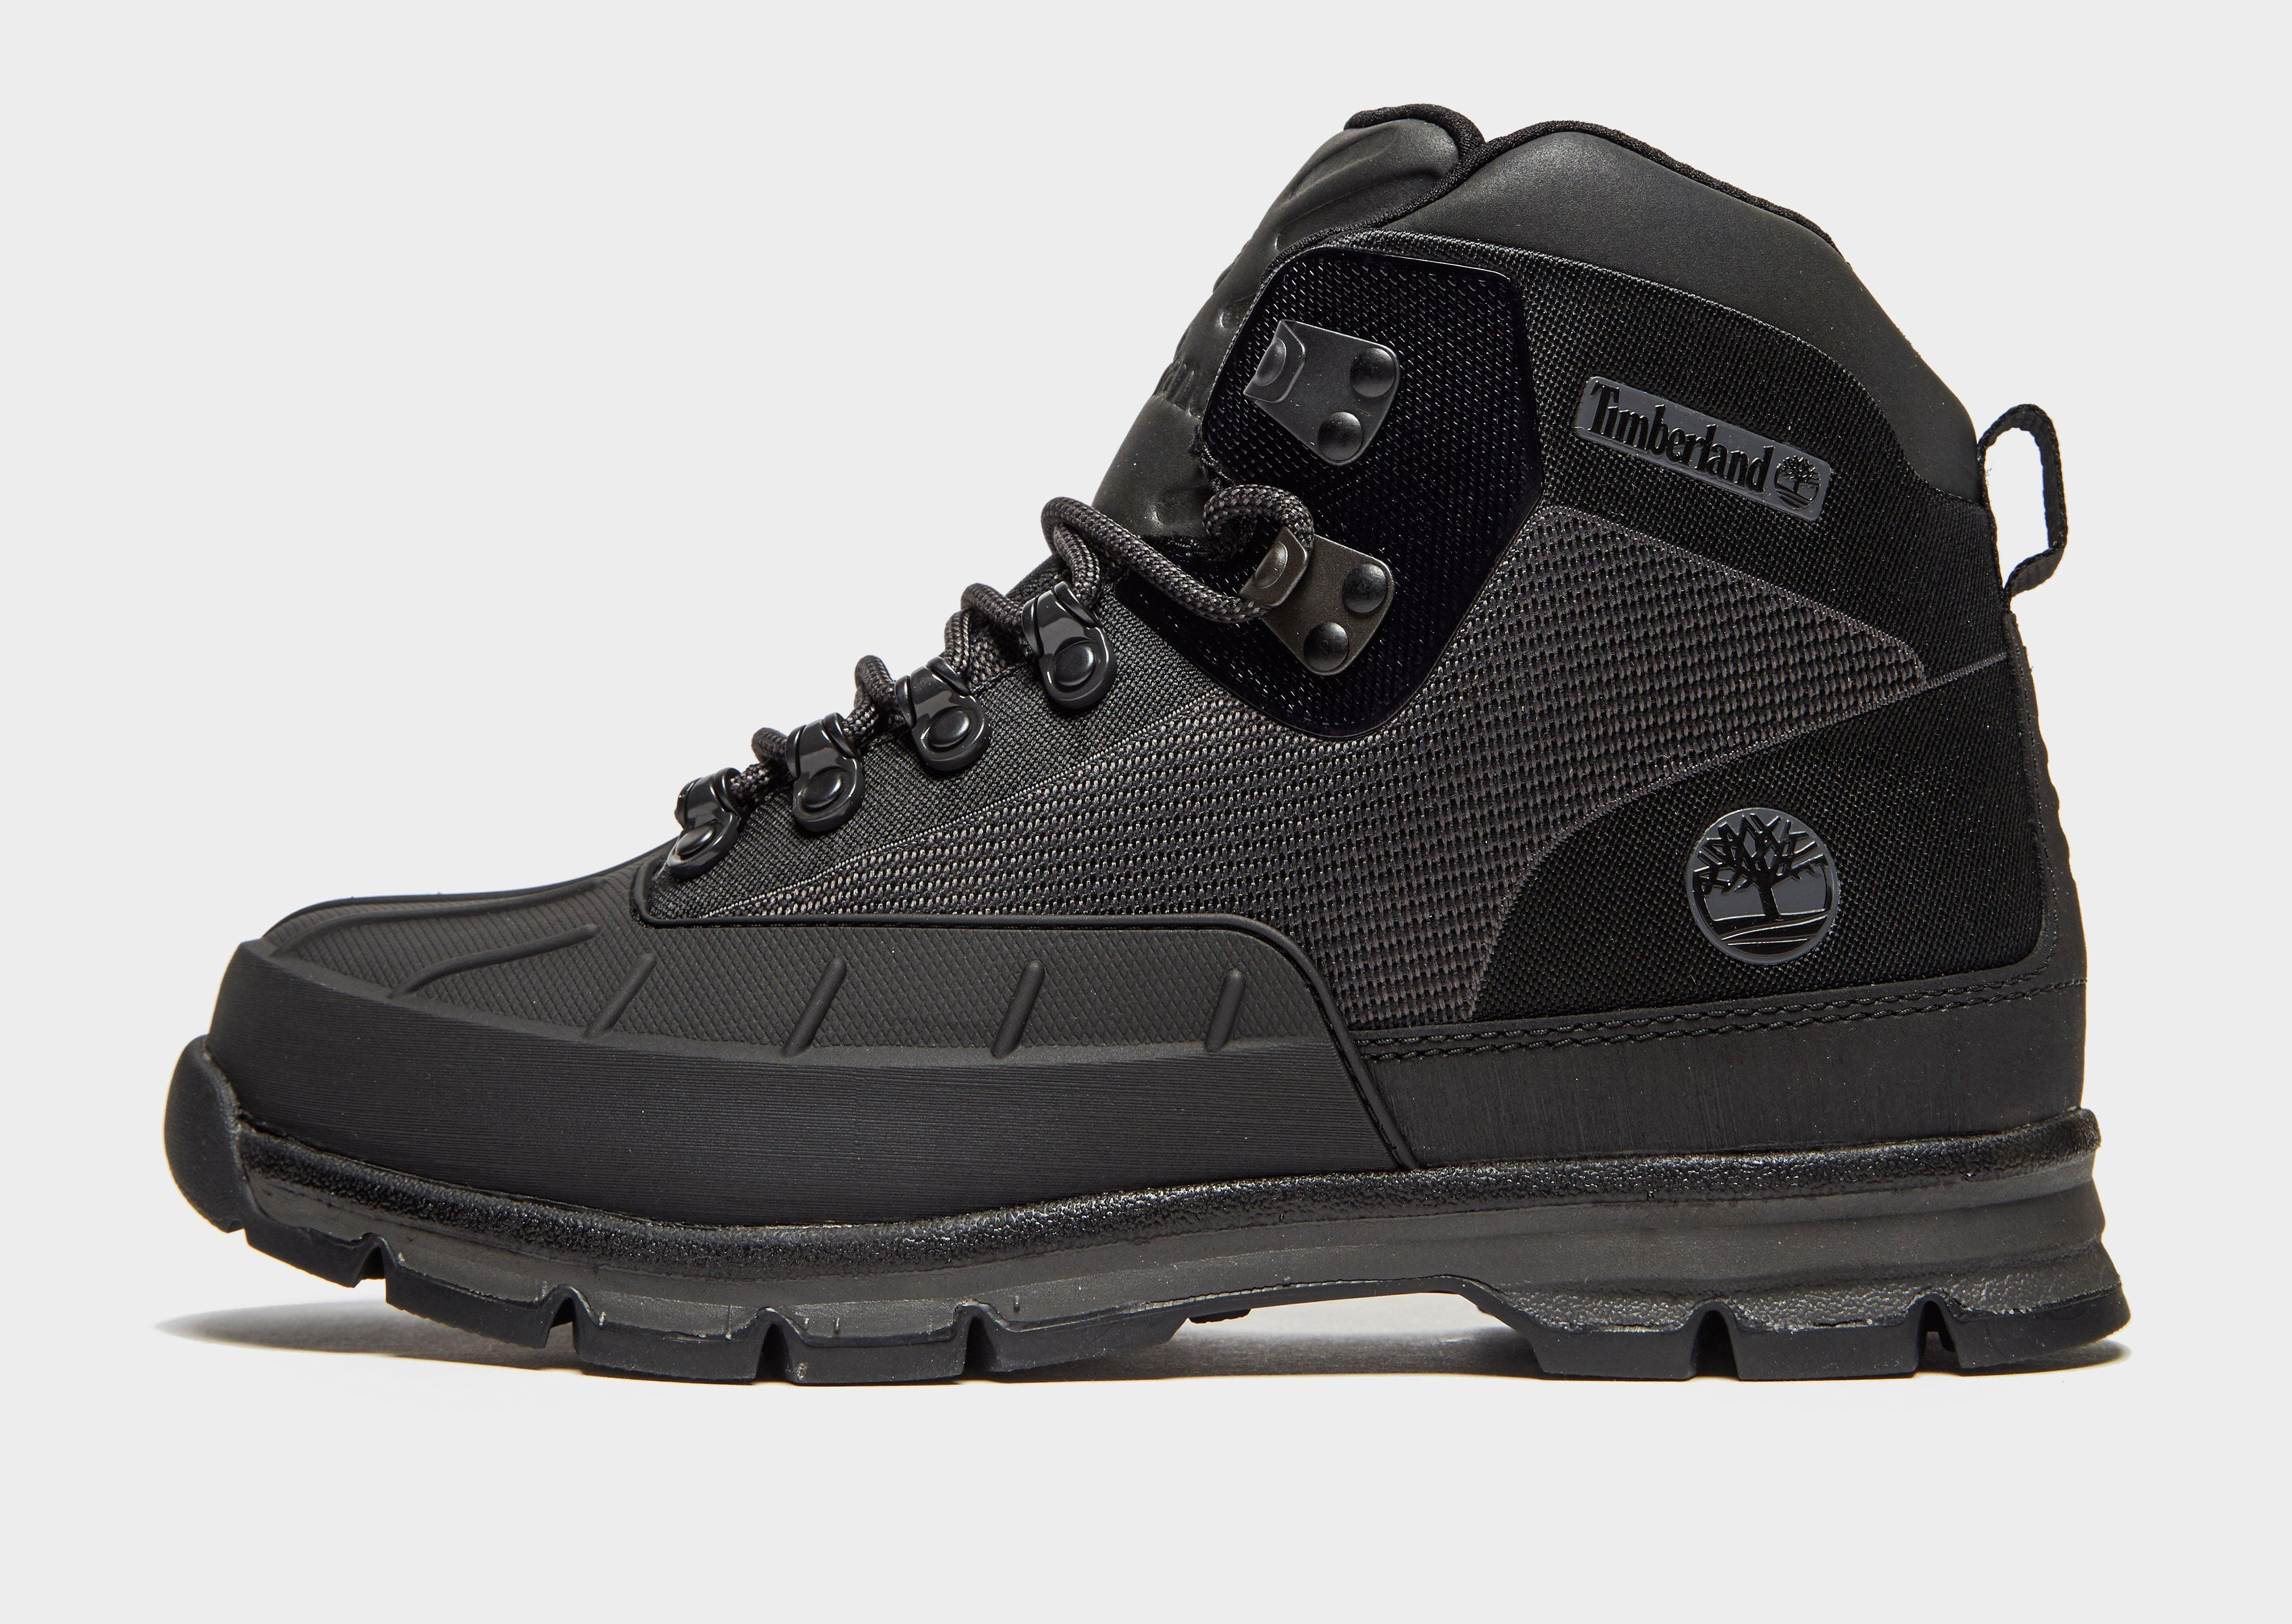 1d49049a98c Timberland Euro Hiker Shell-toe in Black for Men - Lyst